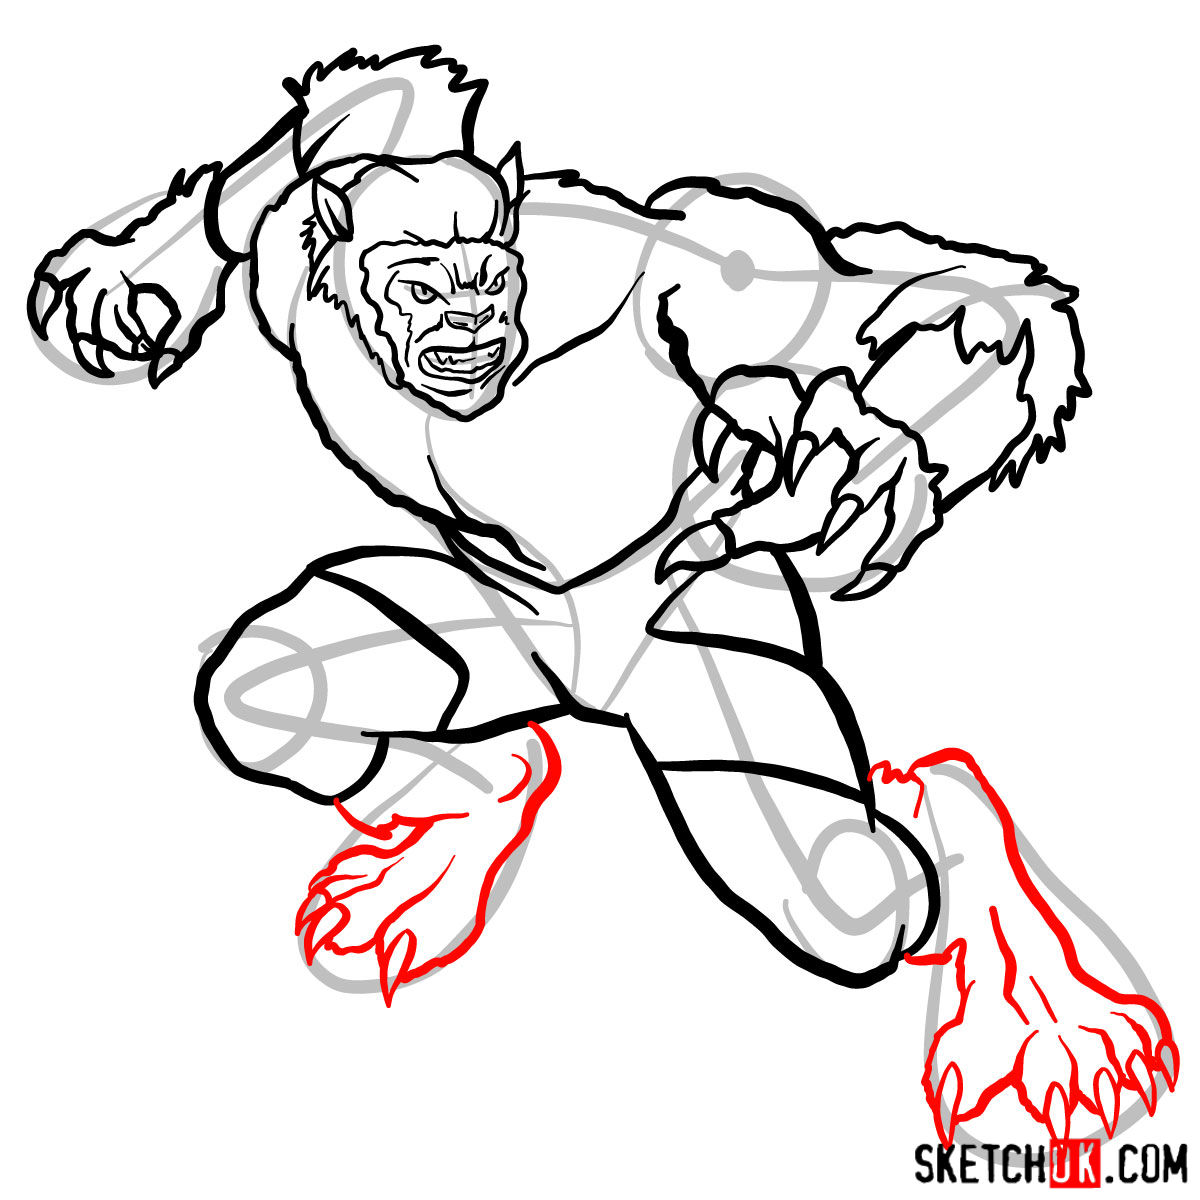 How to draw Beast (X-Men mutant) - step 12